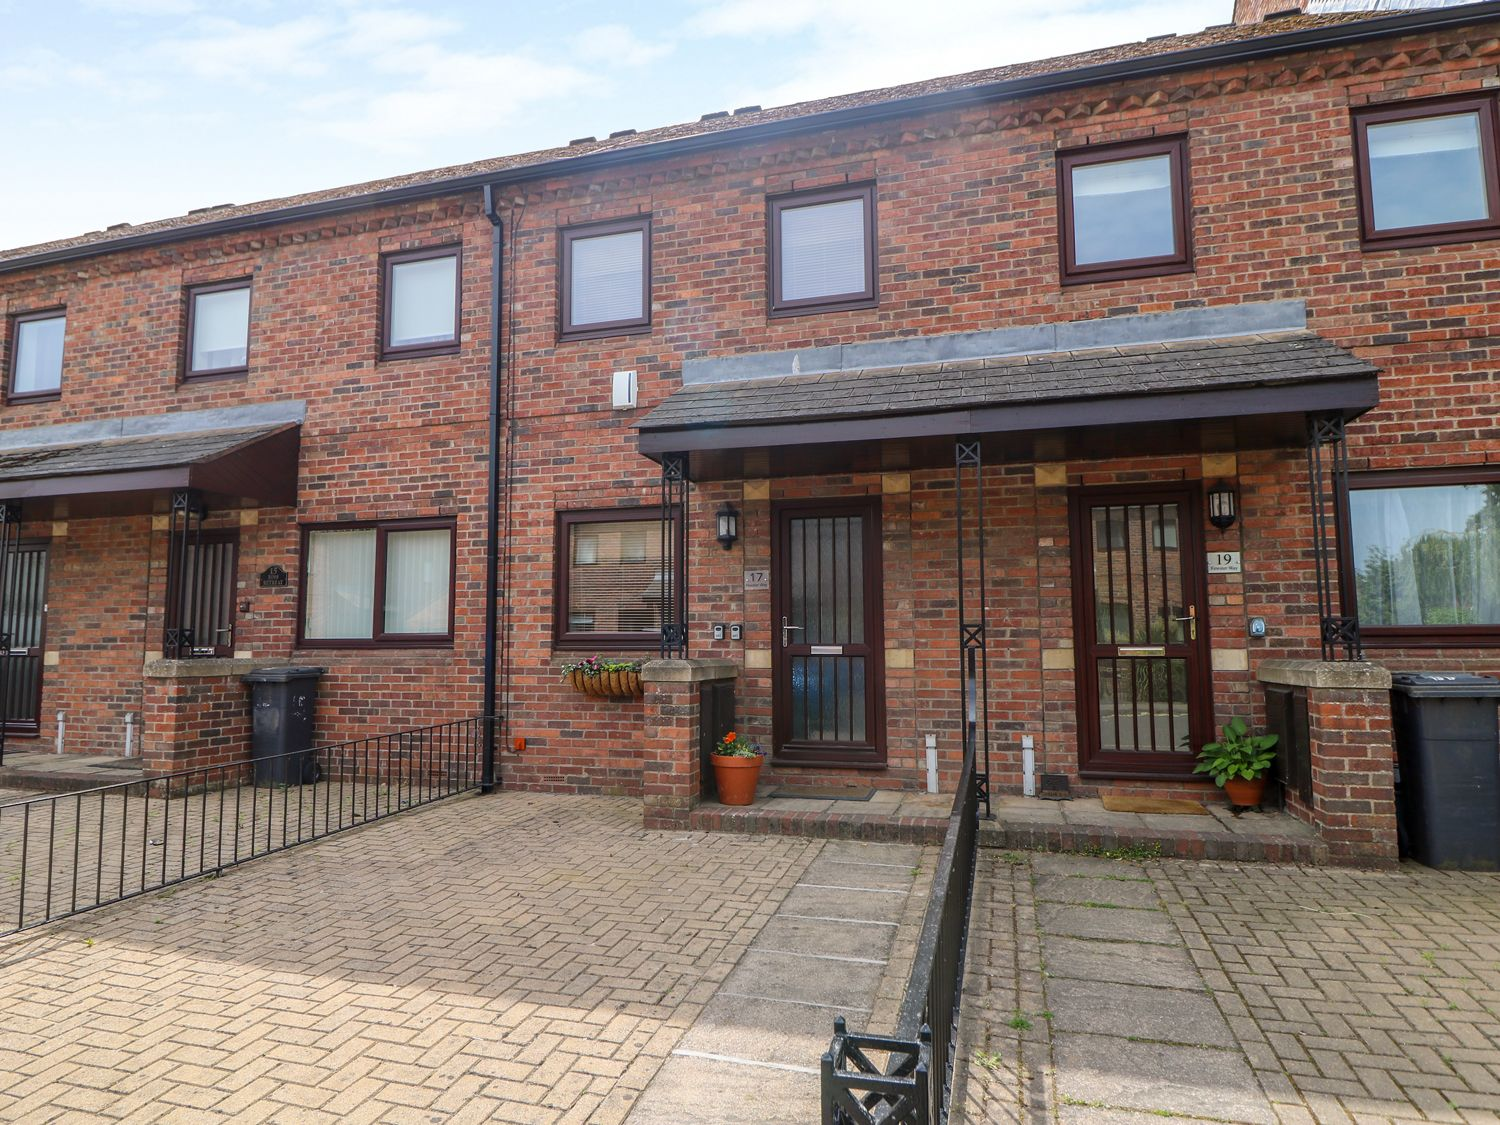 17 Fewster Way - Whitby & North Yorkshire - 999118 - photo 1